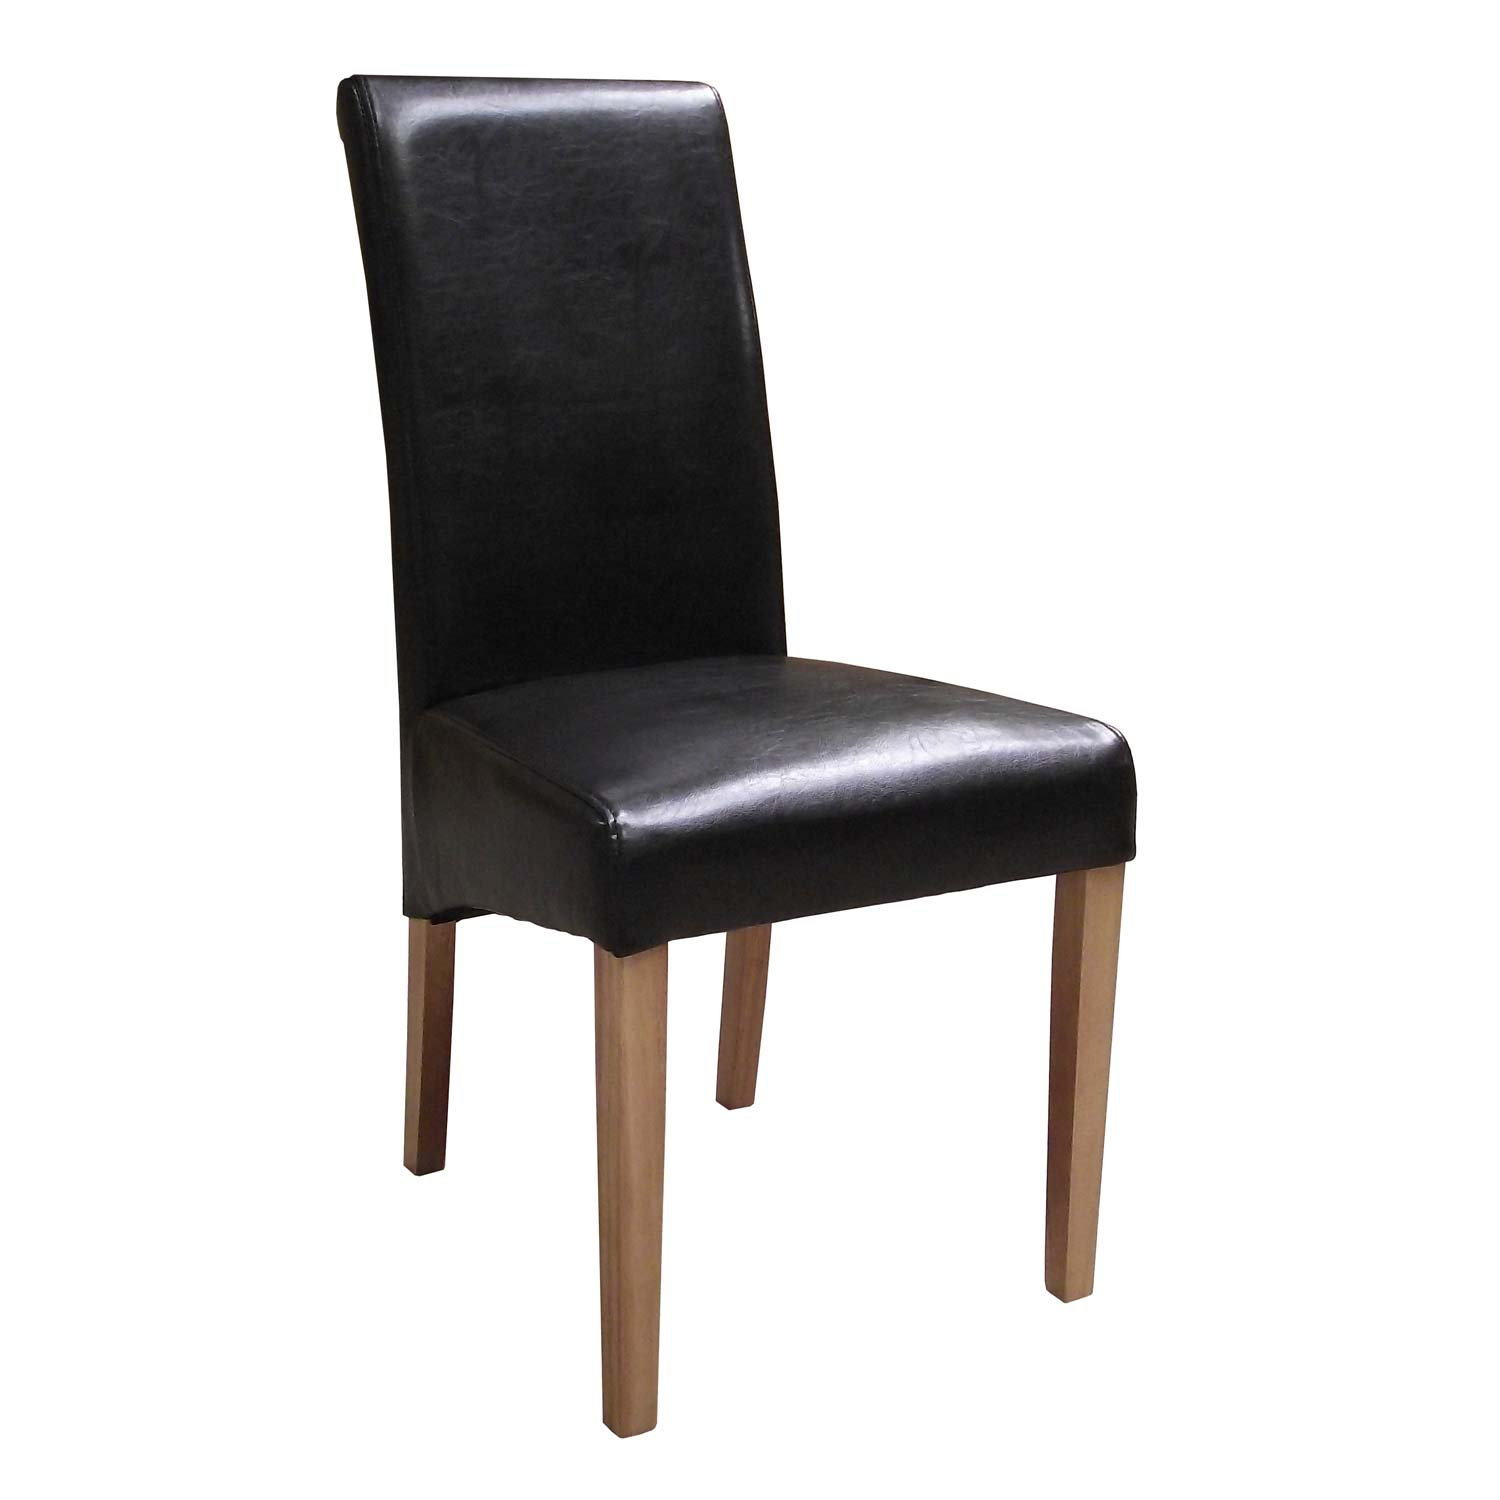 faux leather dining chairs best back support for chair brown countryside pine and oak